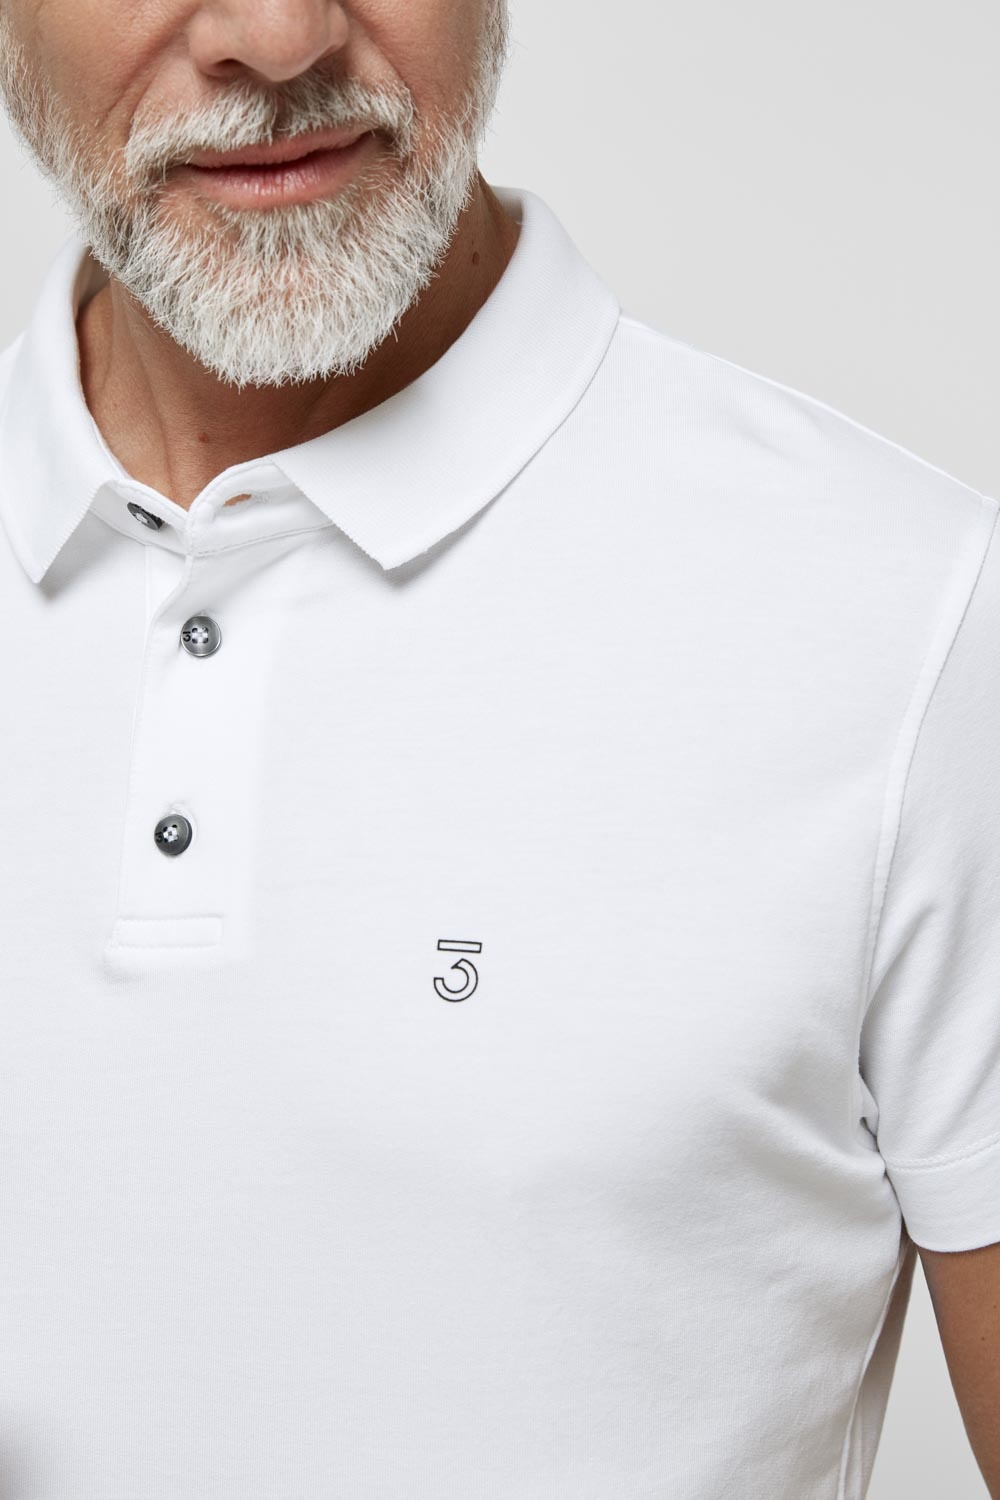 High comfort Lyocell Polo white-4